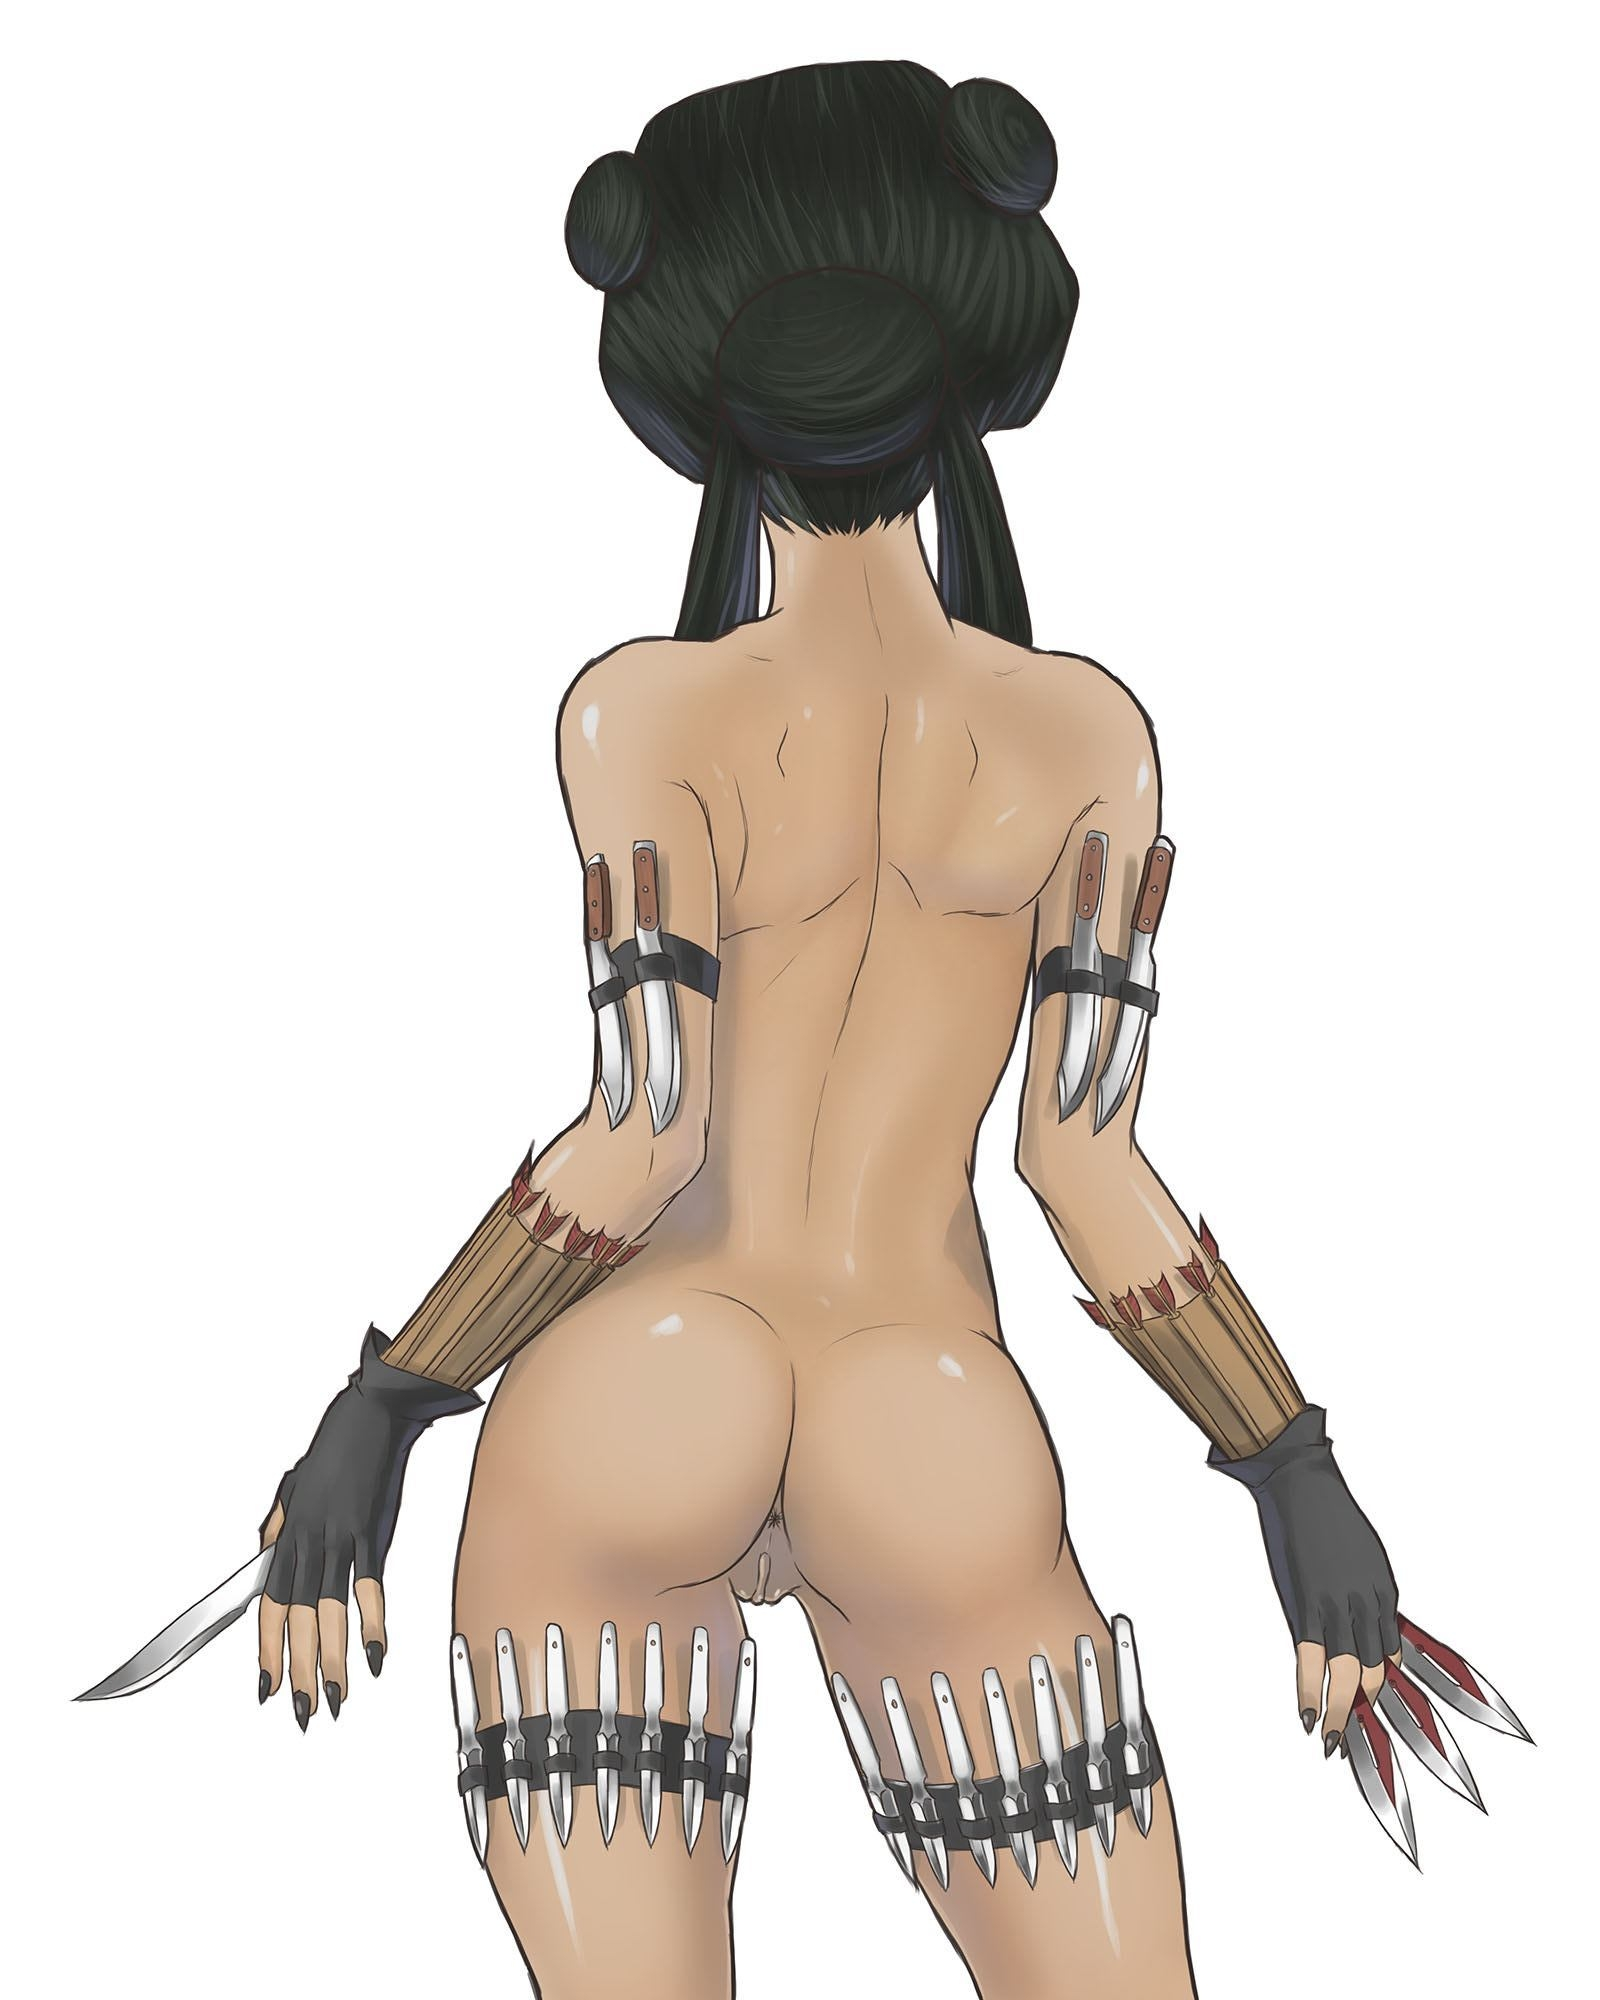 Avatar The Last Airbender Naked porn gallery for avatar the last airbender mai hentai and